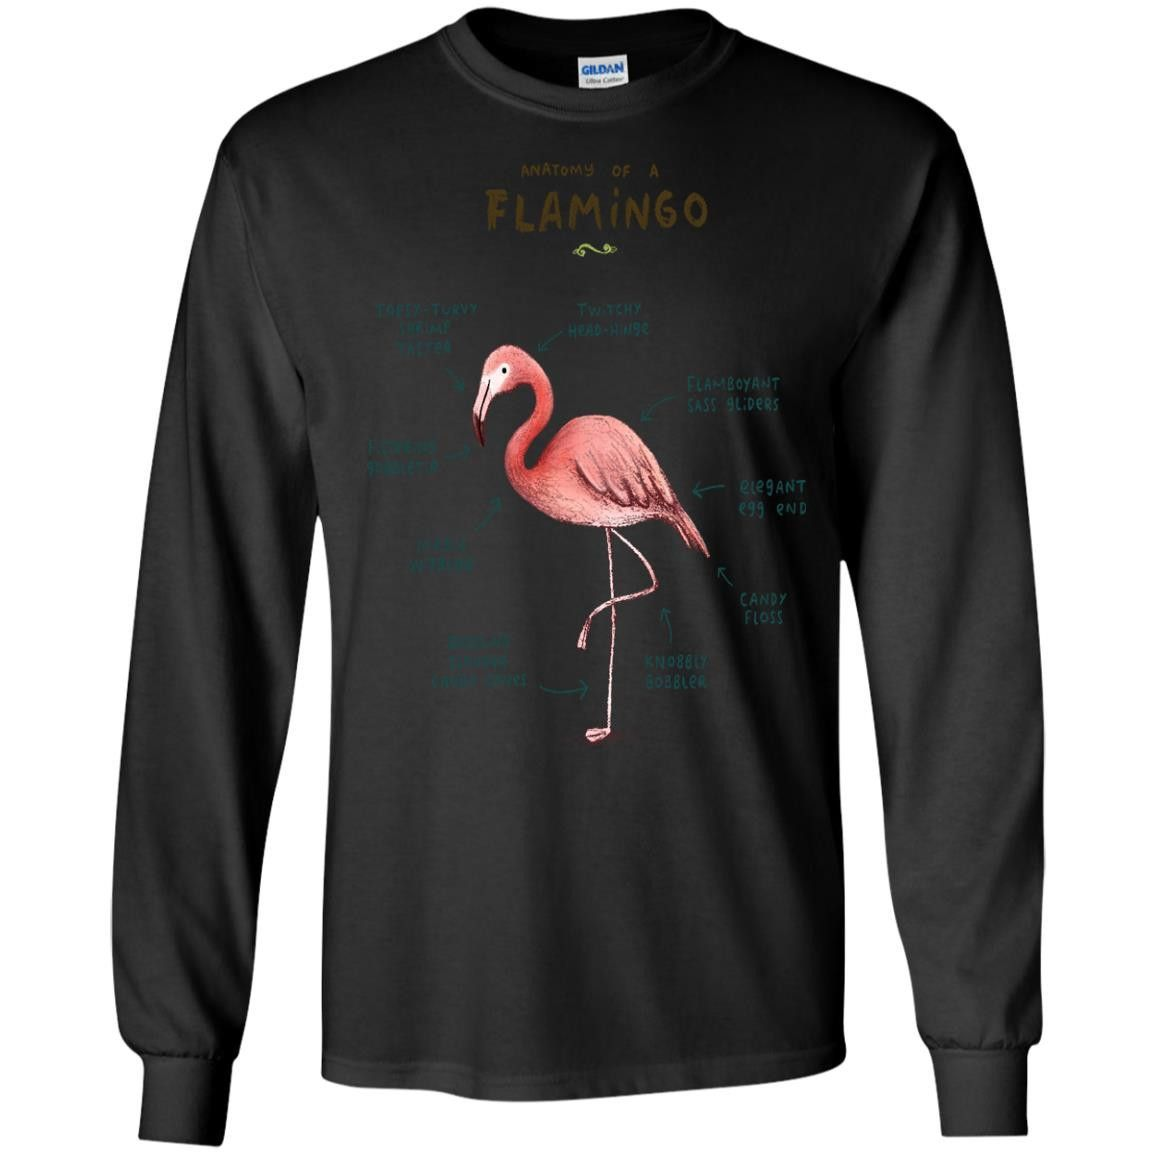 ANATOMY OF A FLAMINGO BY12891287 G240 Gildan LS Ultra Cotton T-Shirt